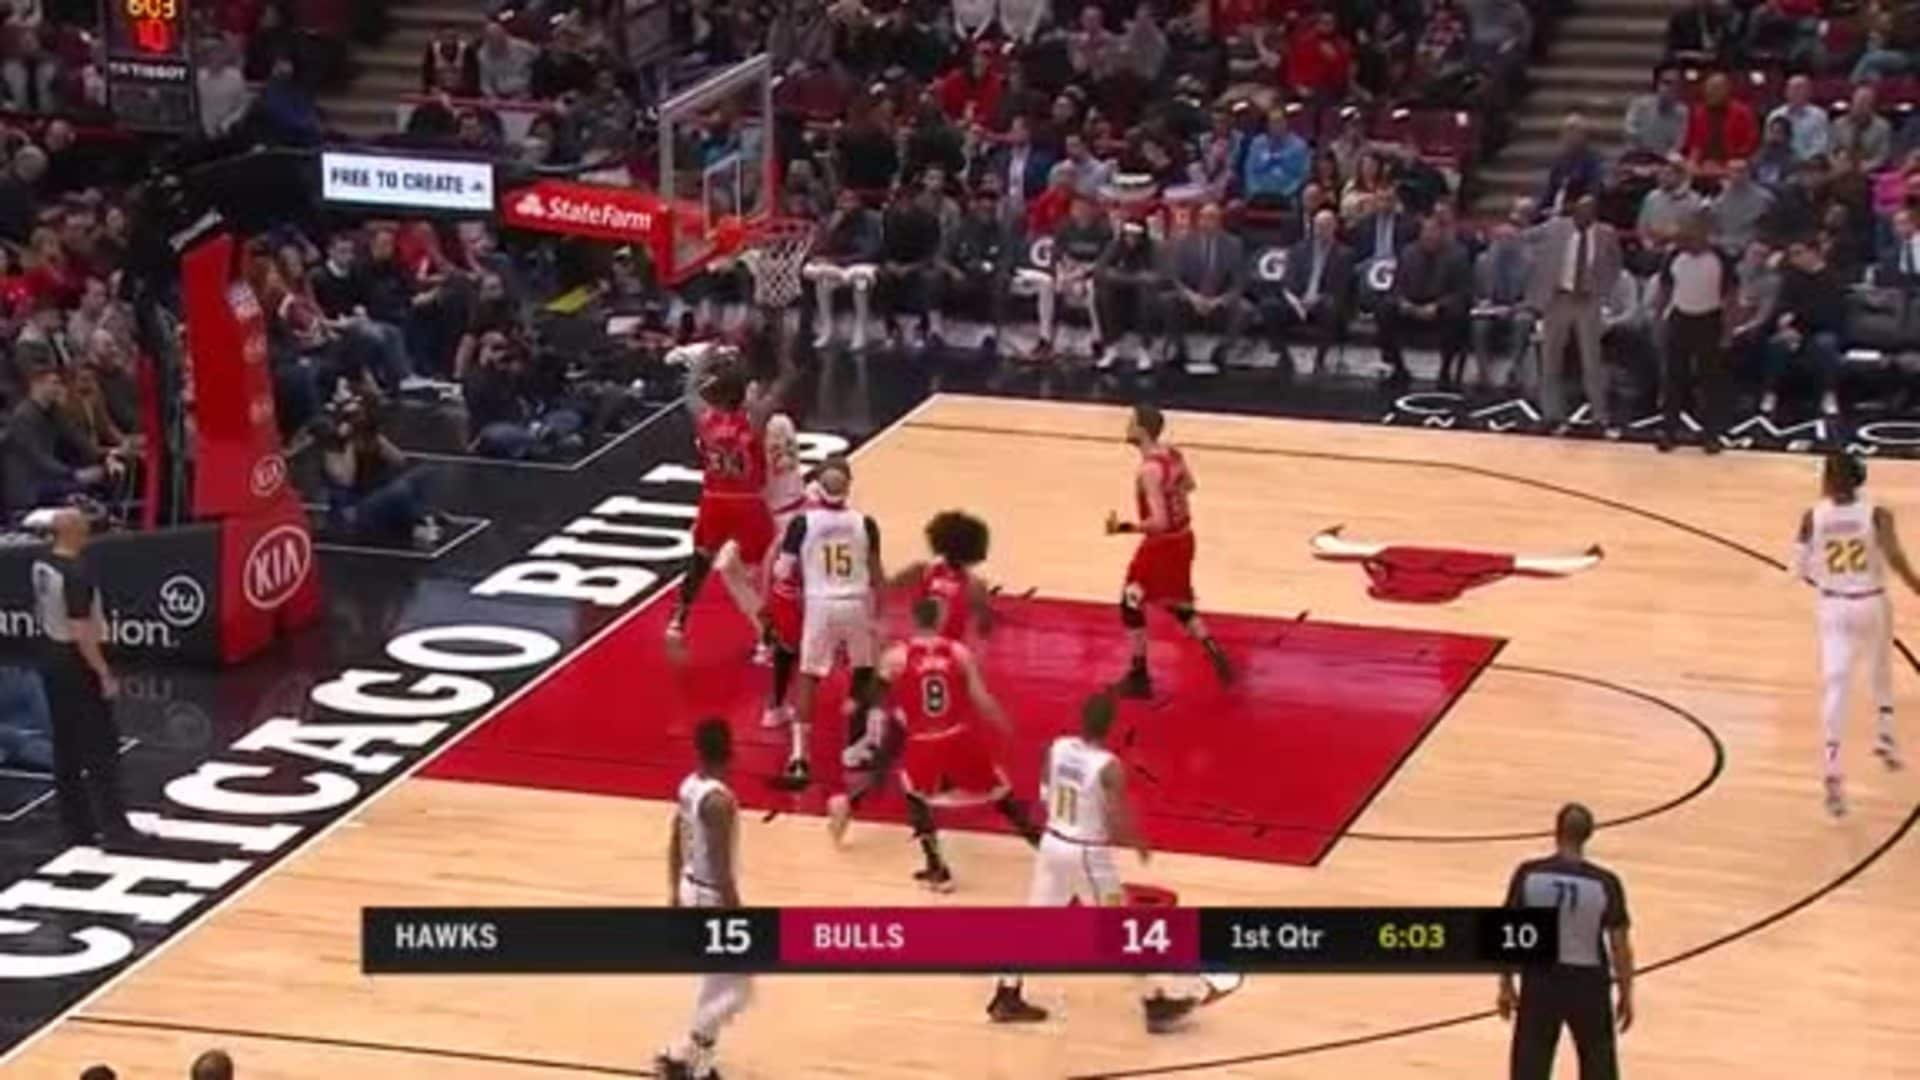 Len Drops 17 Points in Chicago